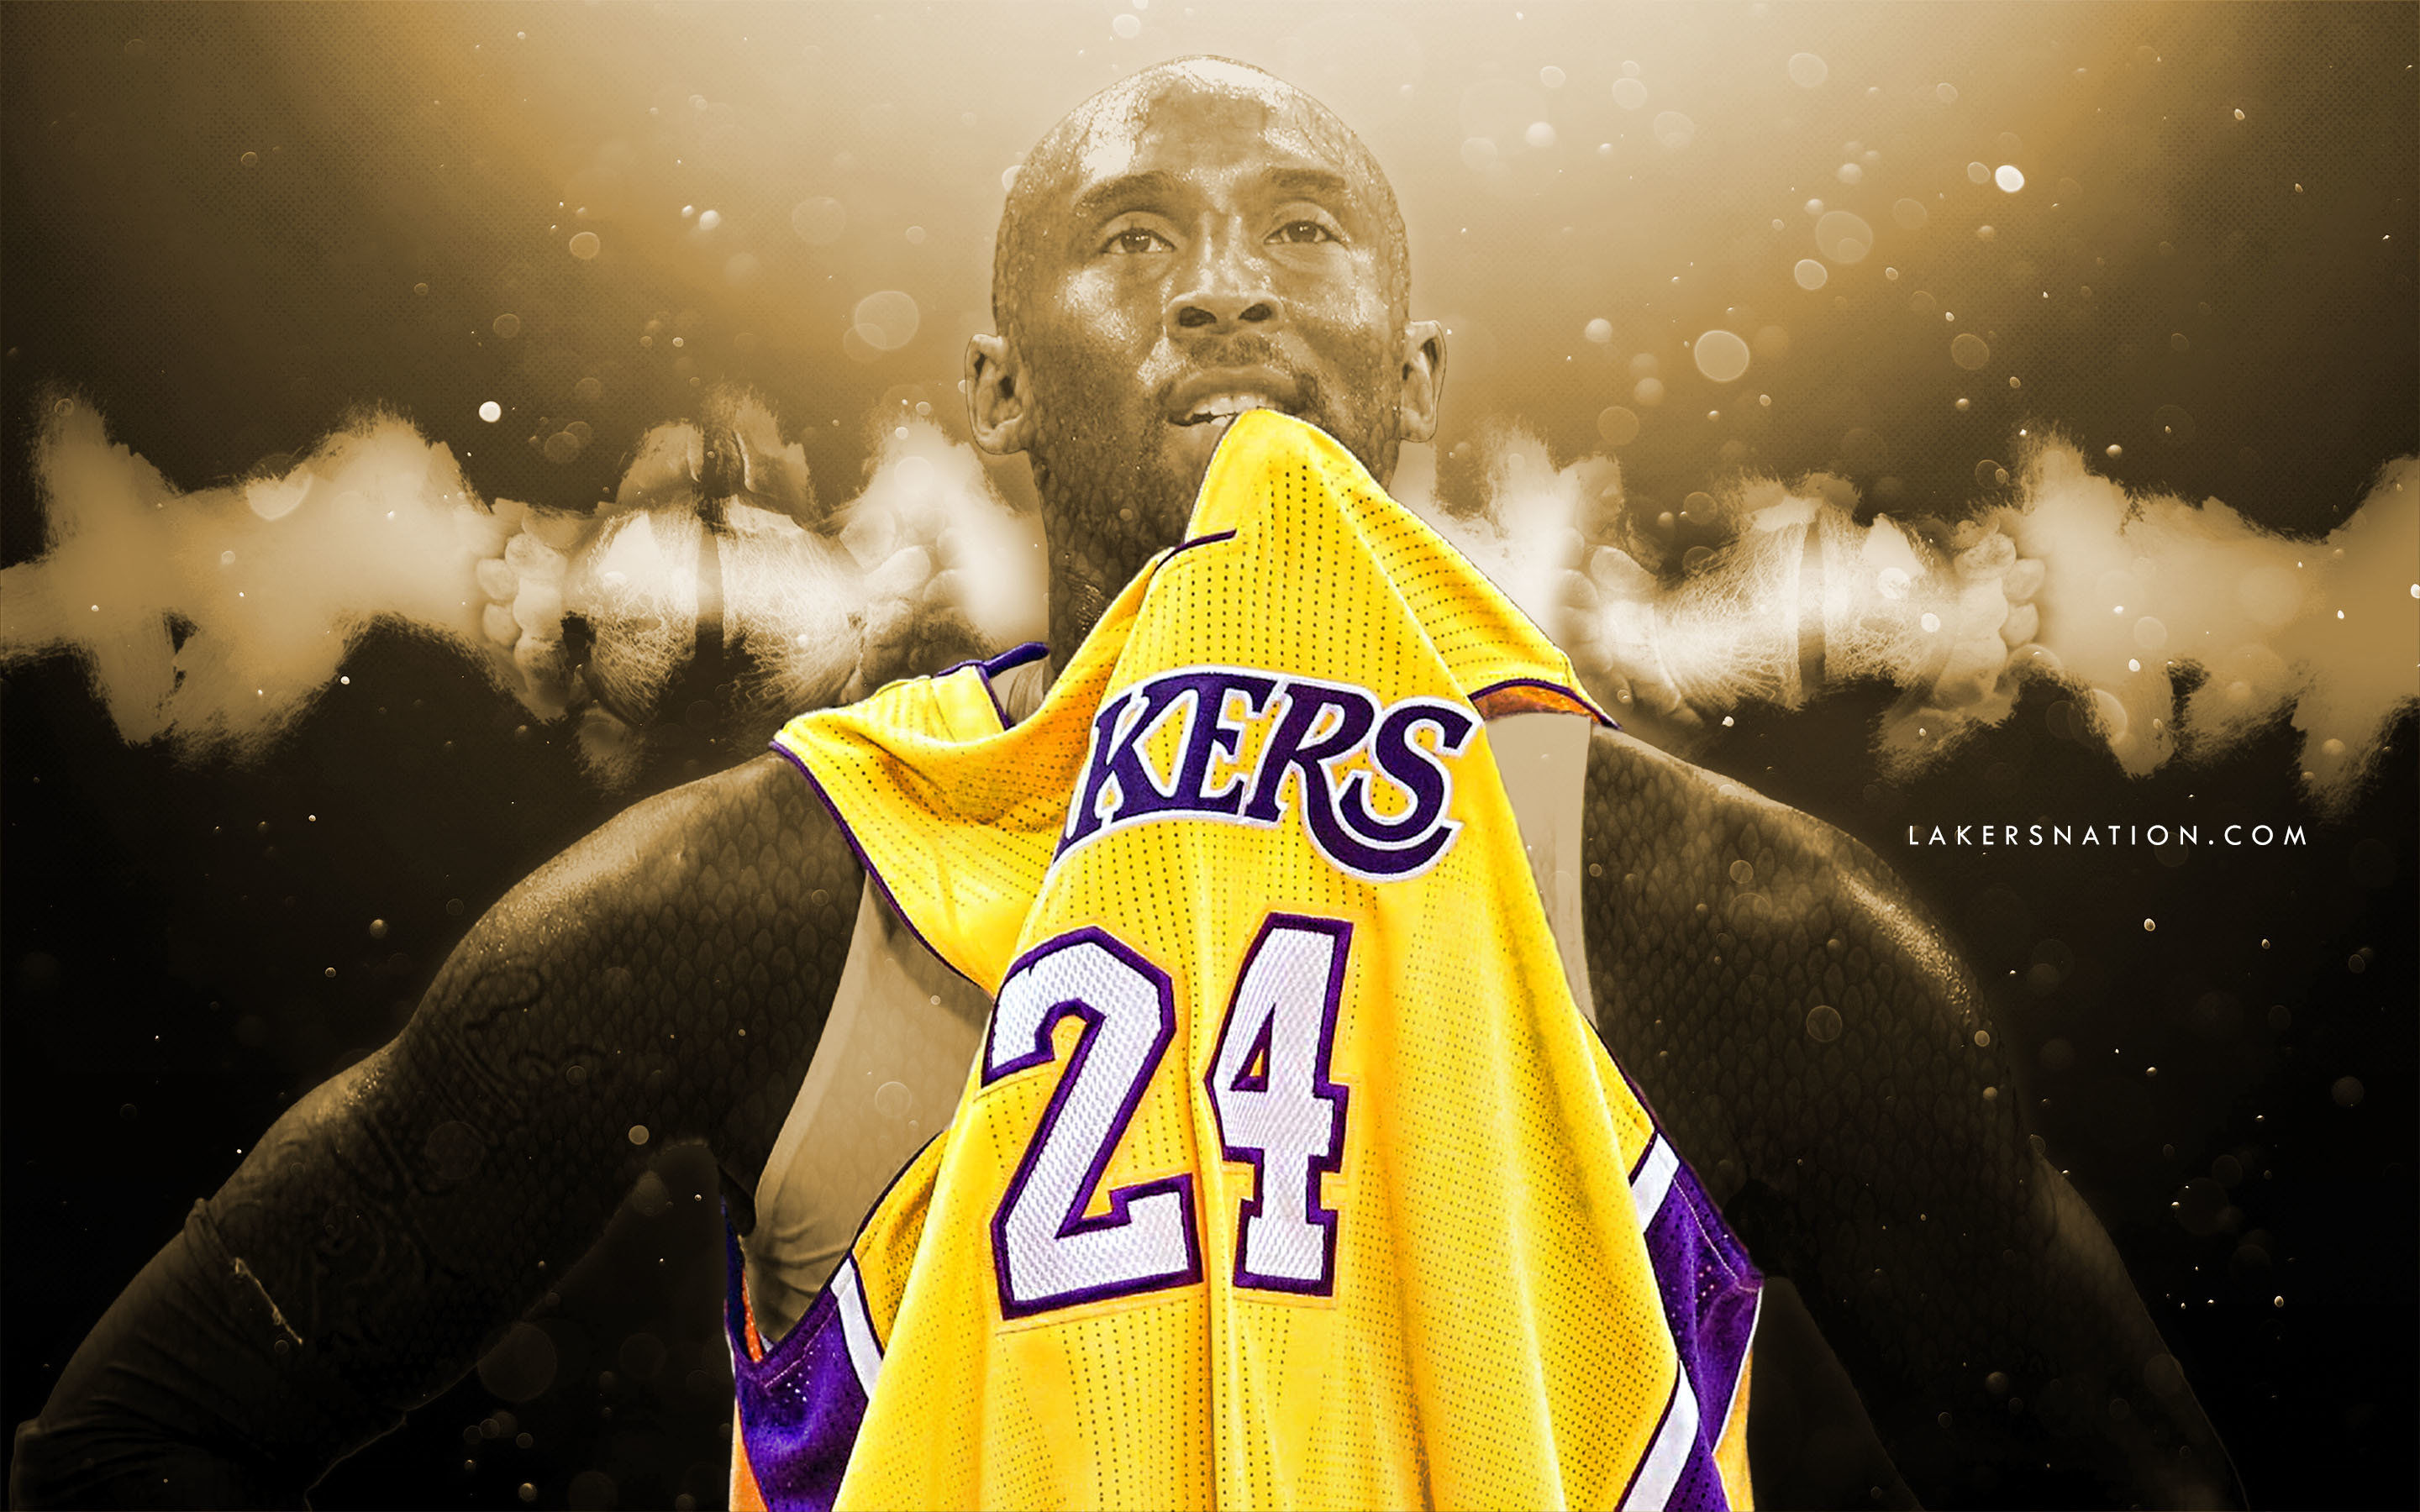 Awesome Kobe Bryant free wallpaper ID:162378 for hd 2880x1800 computer